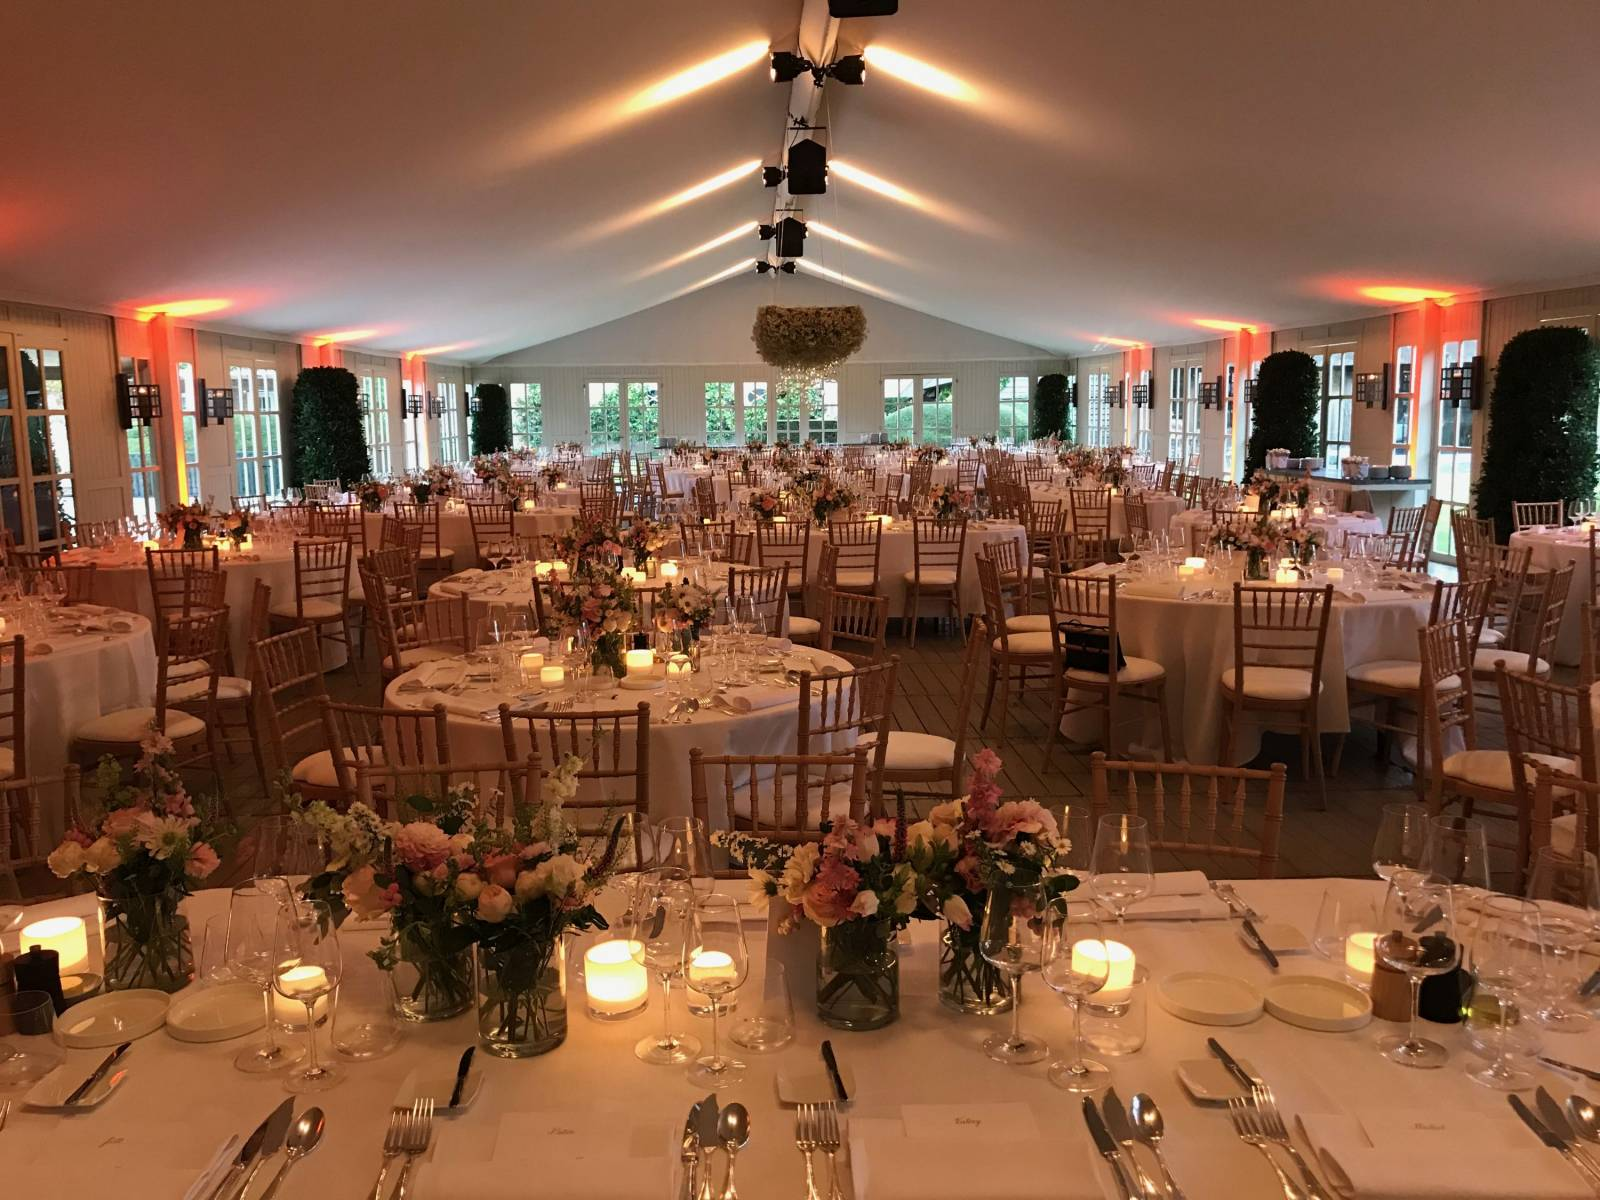 Hendrickx feesten - Catering - Traiteur - Cateraar - House of Weddings - 17